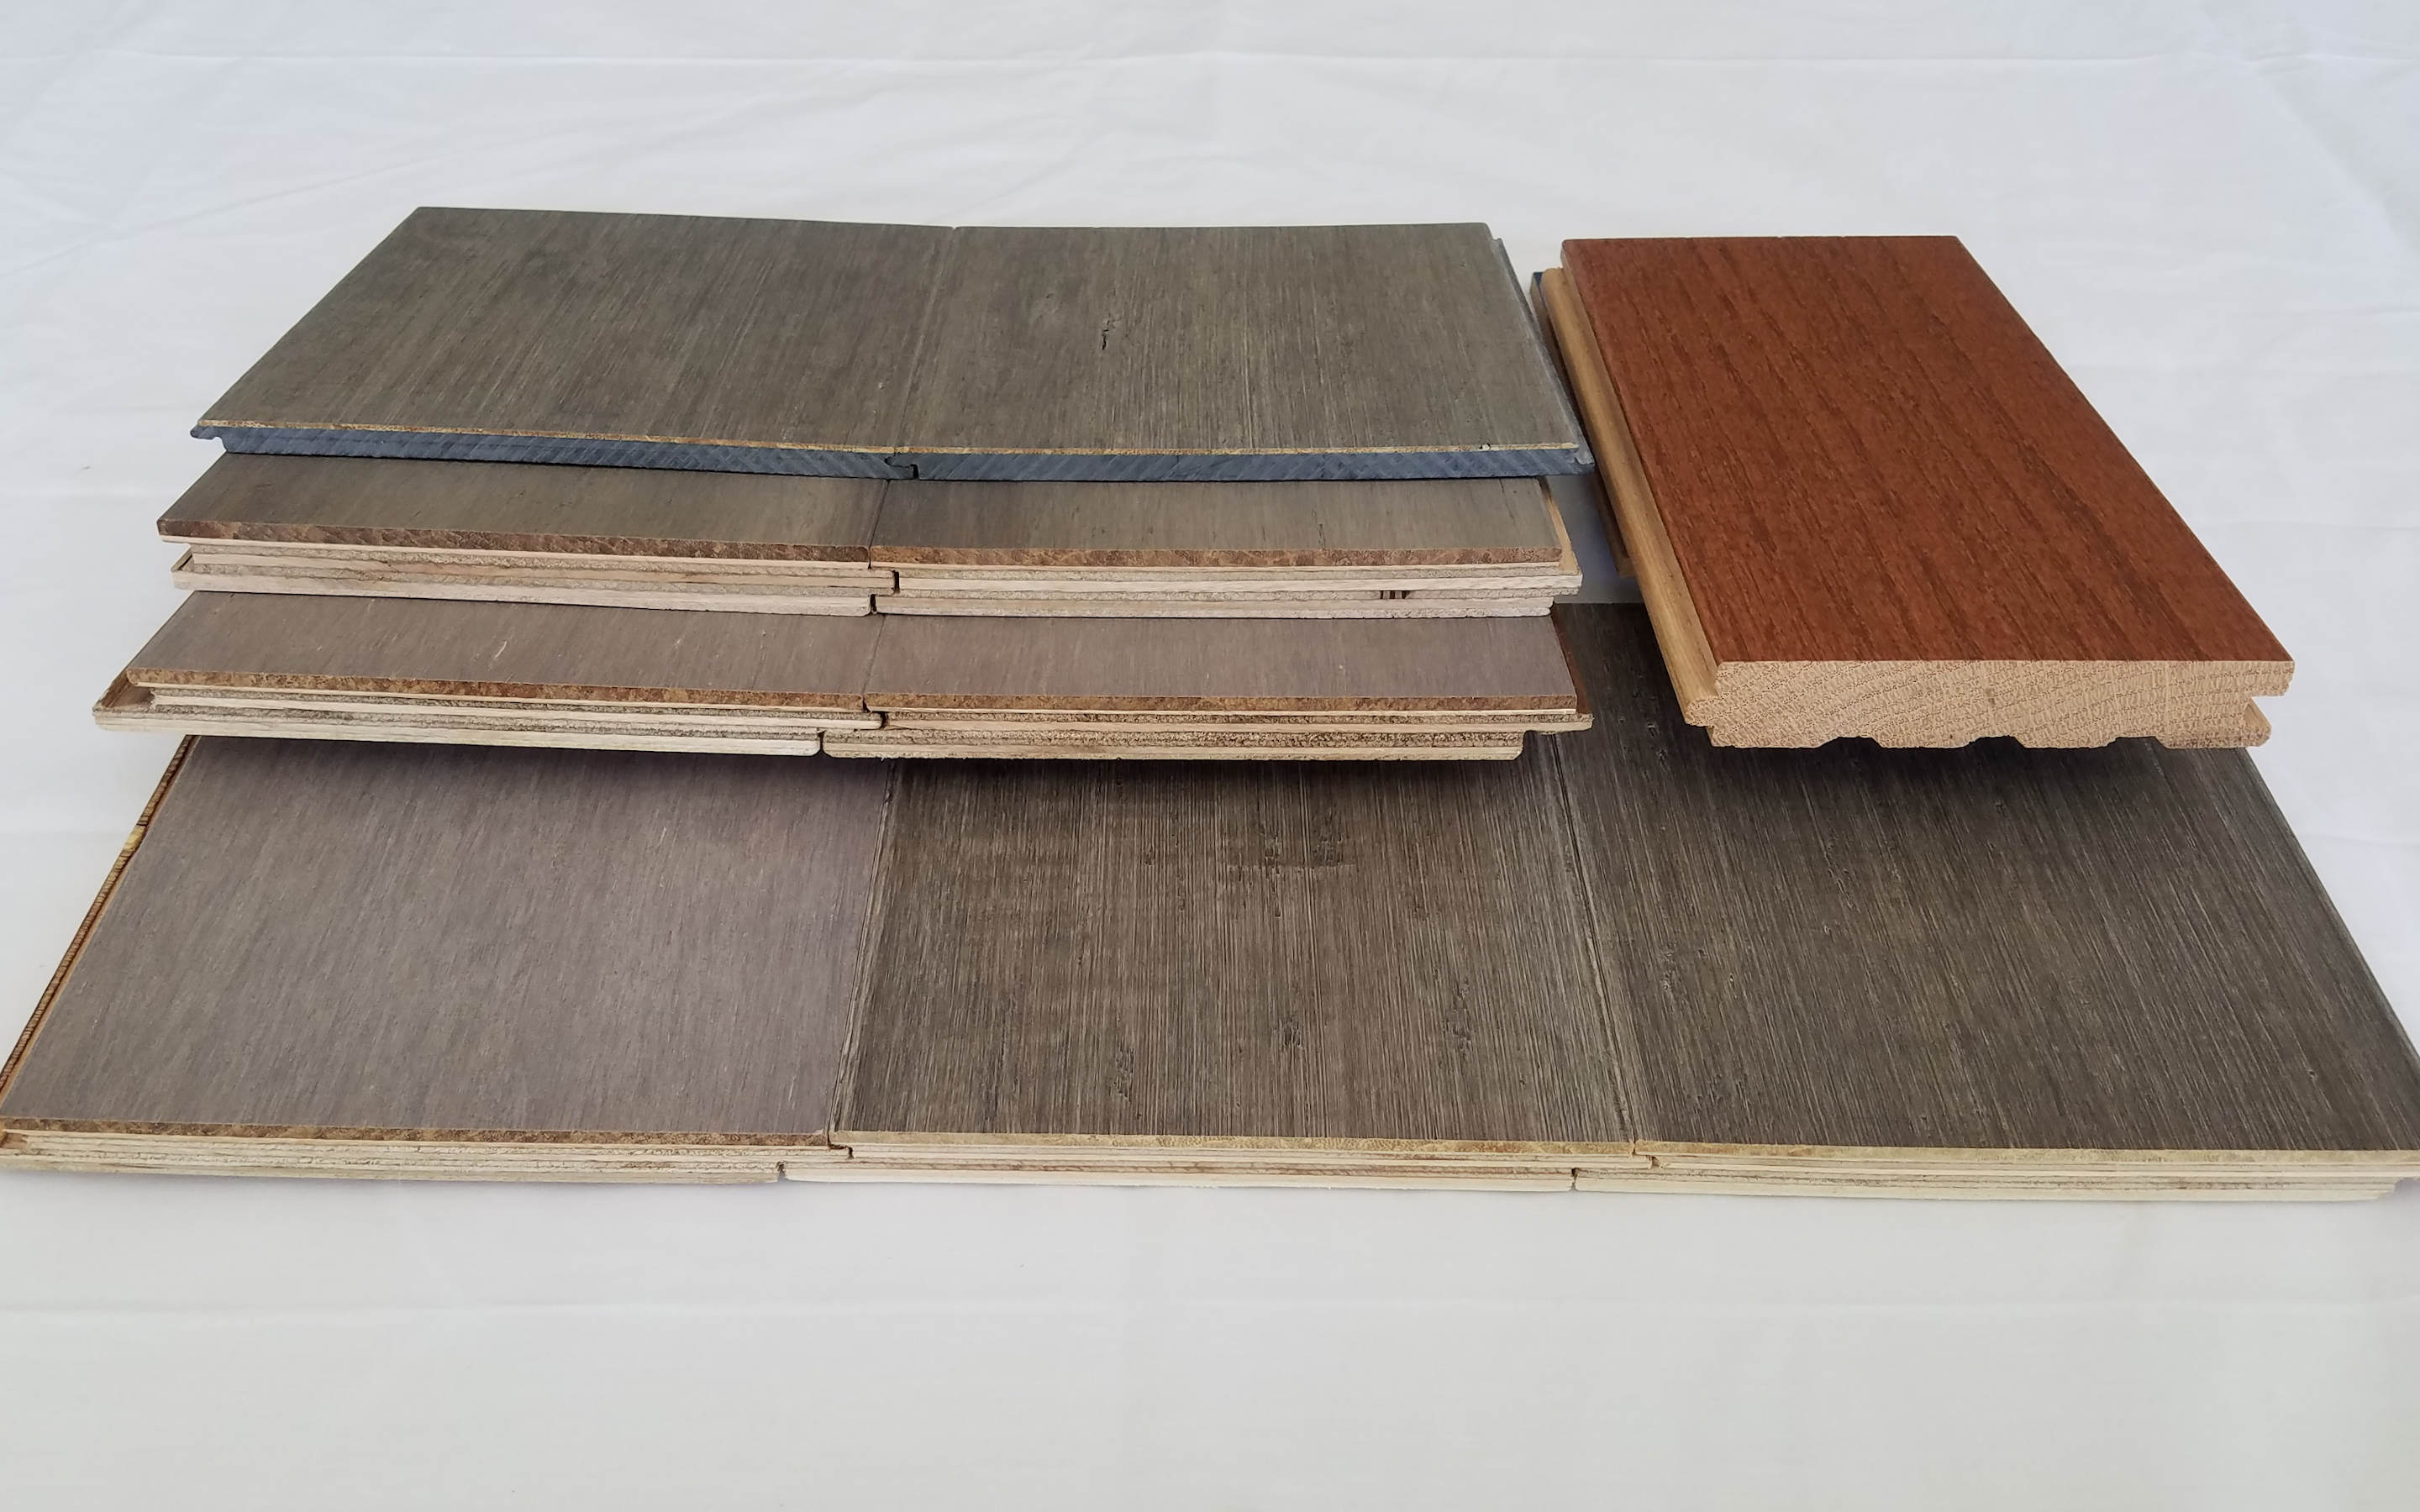 edge samples of engineered wood and hardwood flooring